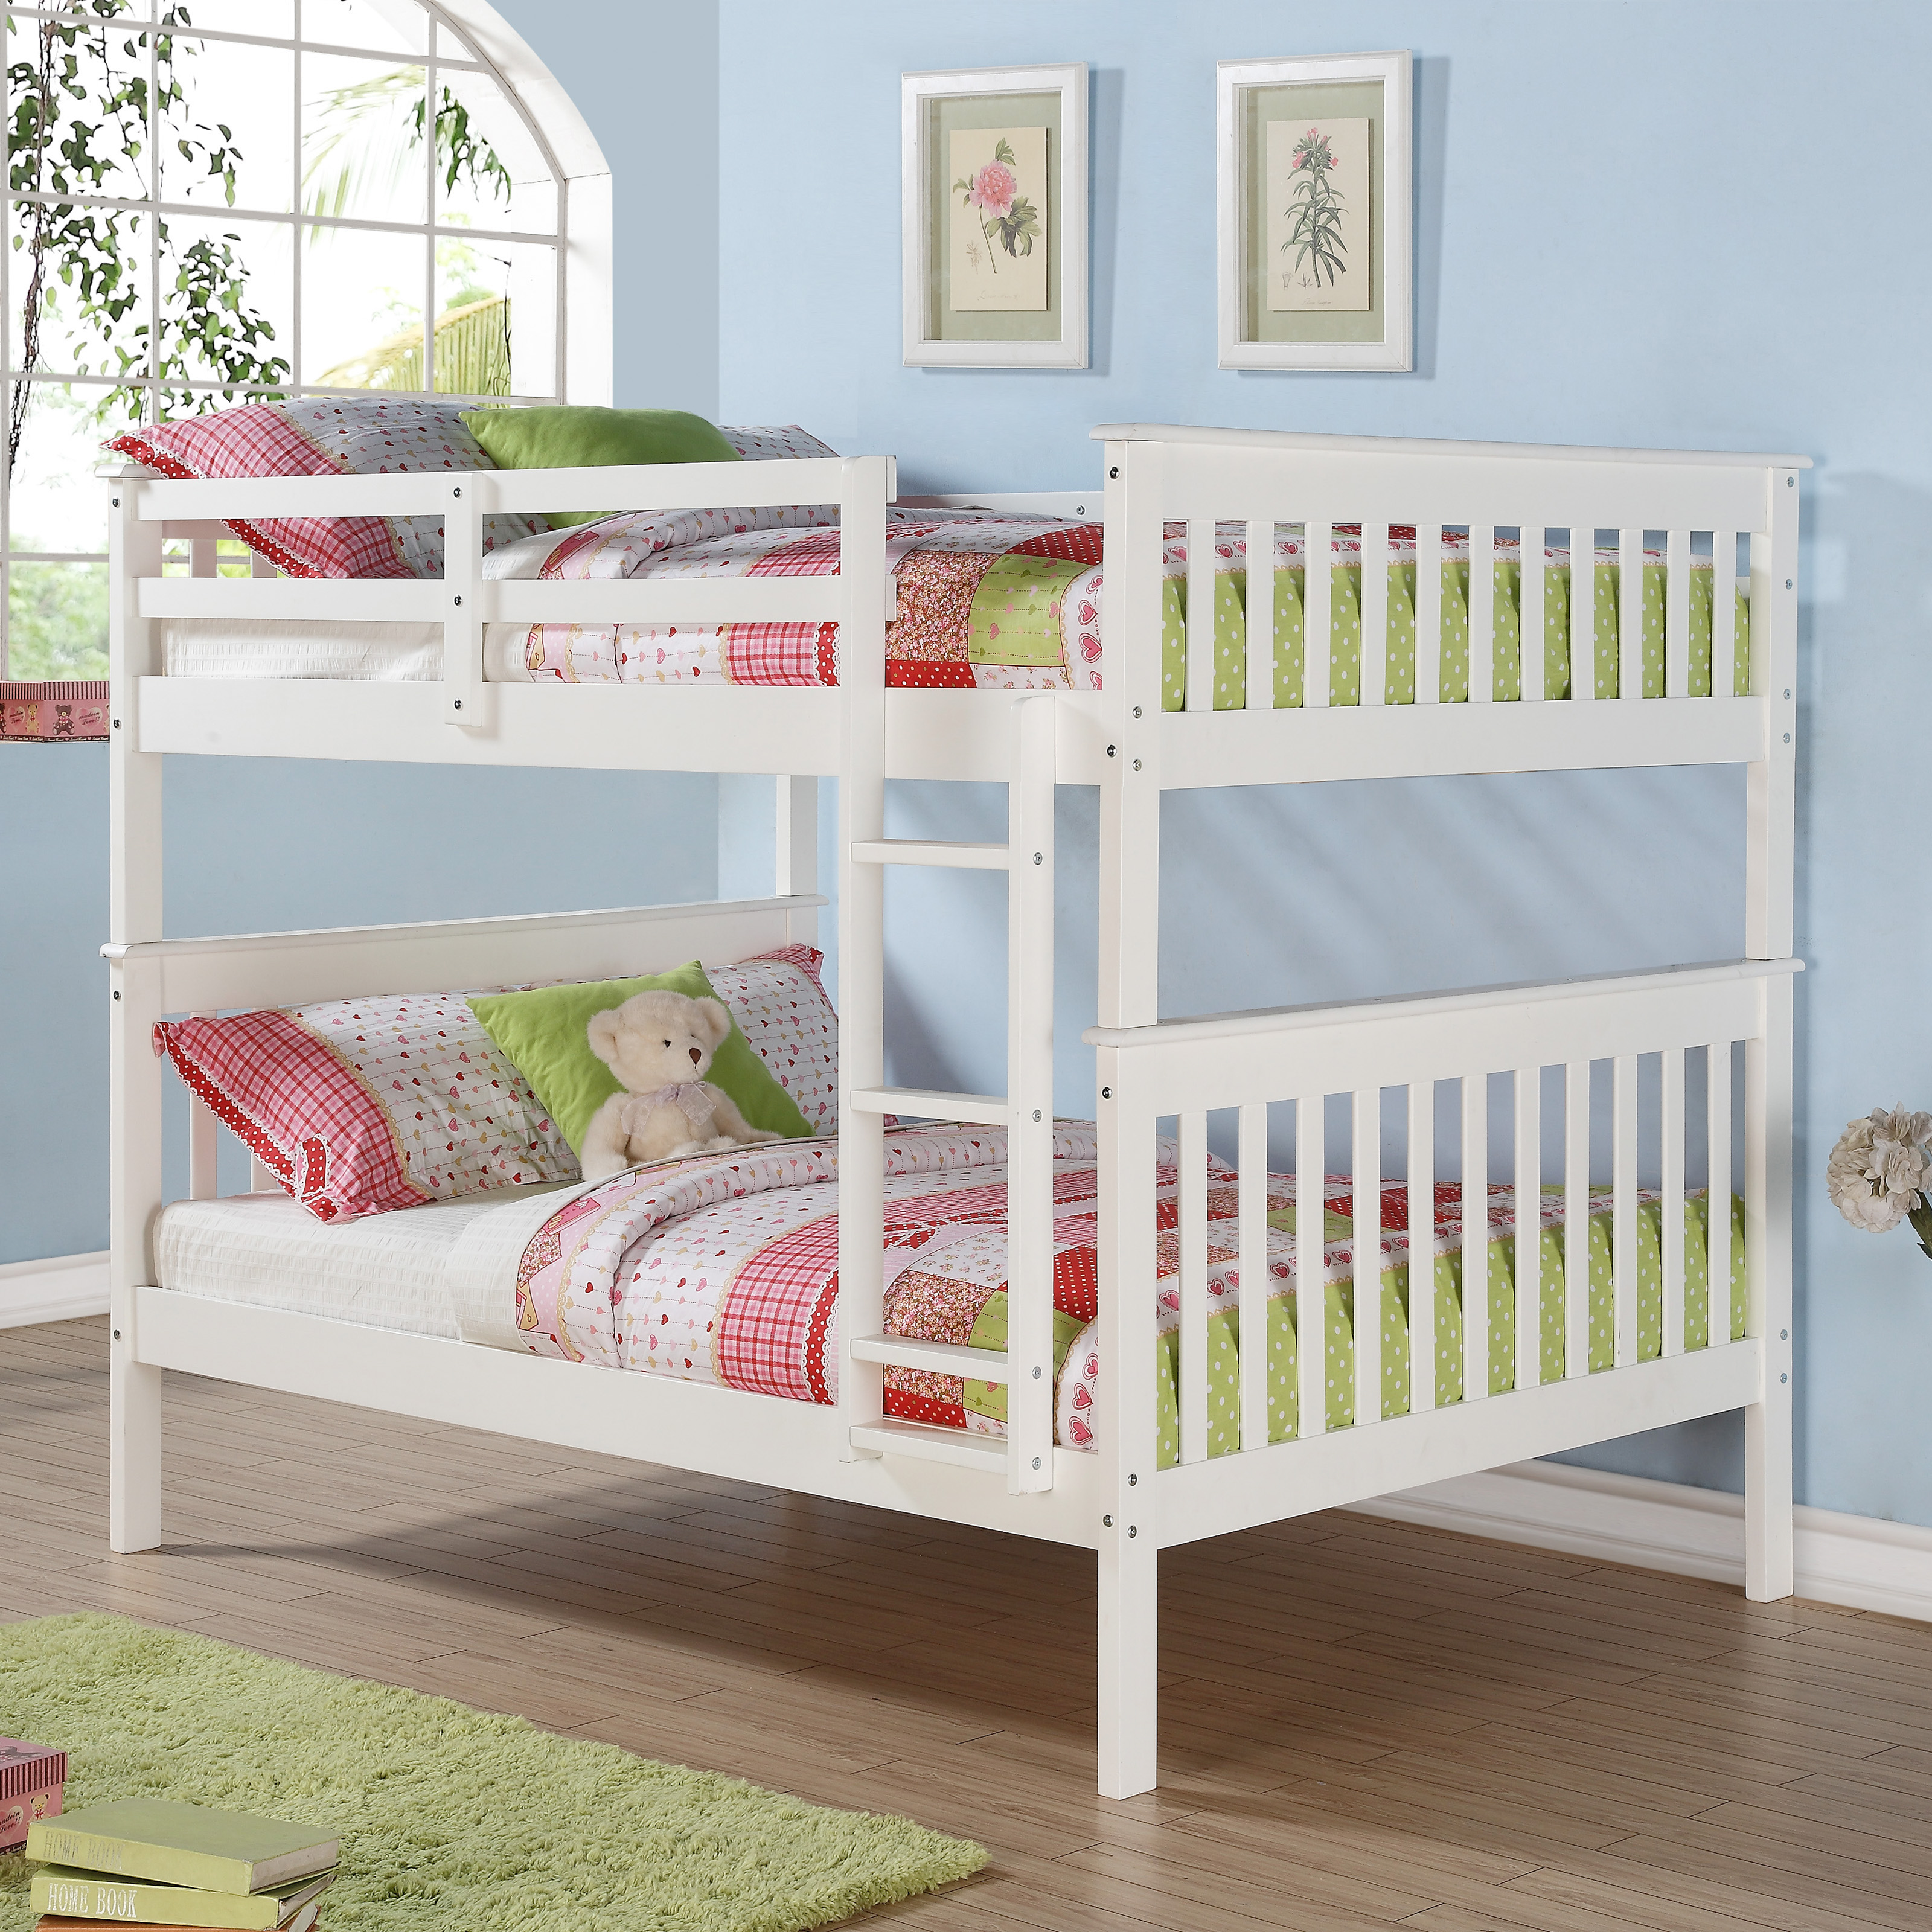 Donco Kids Full Over Full Mission Bunk Bed - Bunk Beds ...